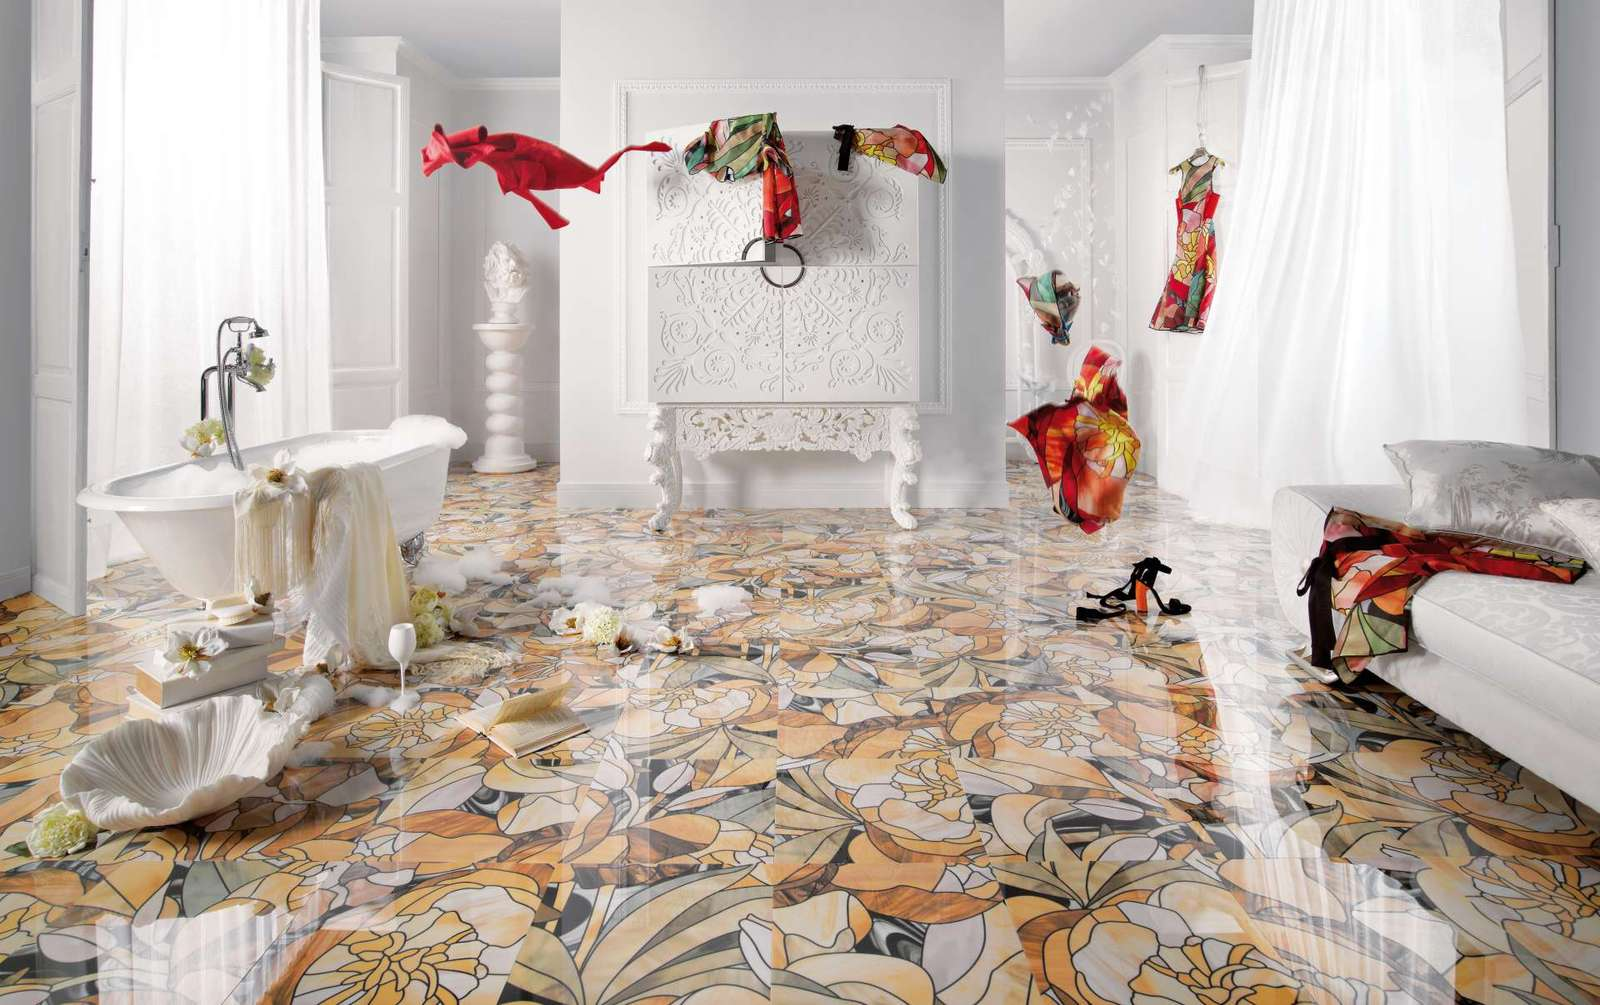 Charmant 25 Beautiful Tile Flooring Ideas For Living Room, Kitchen And Bathroom  Designs